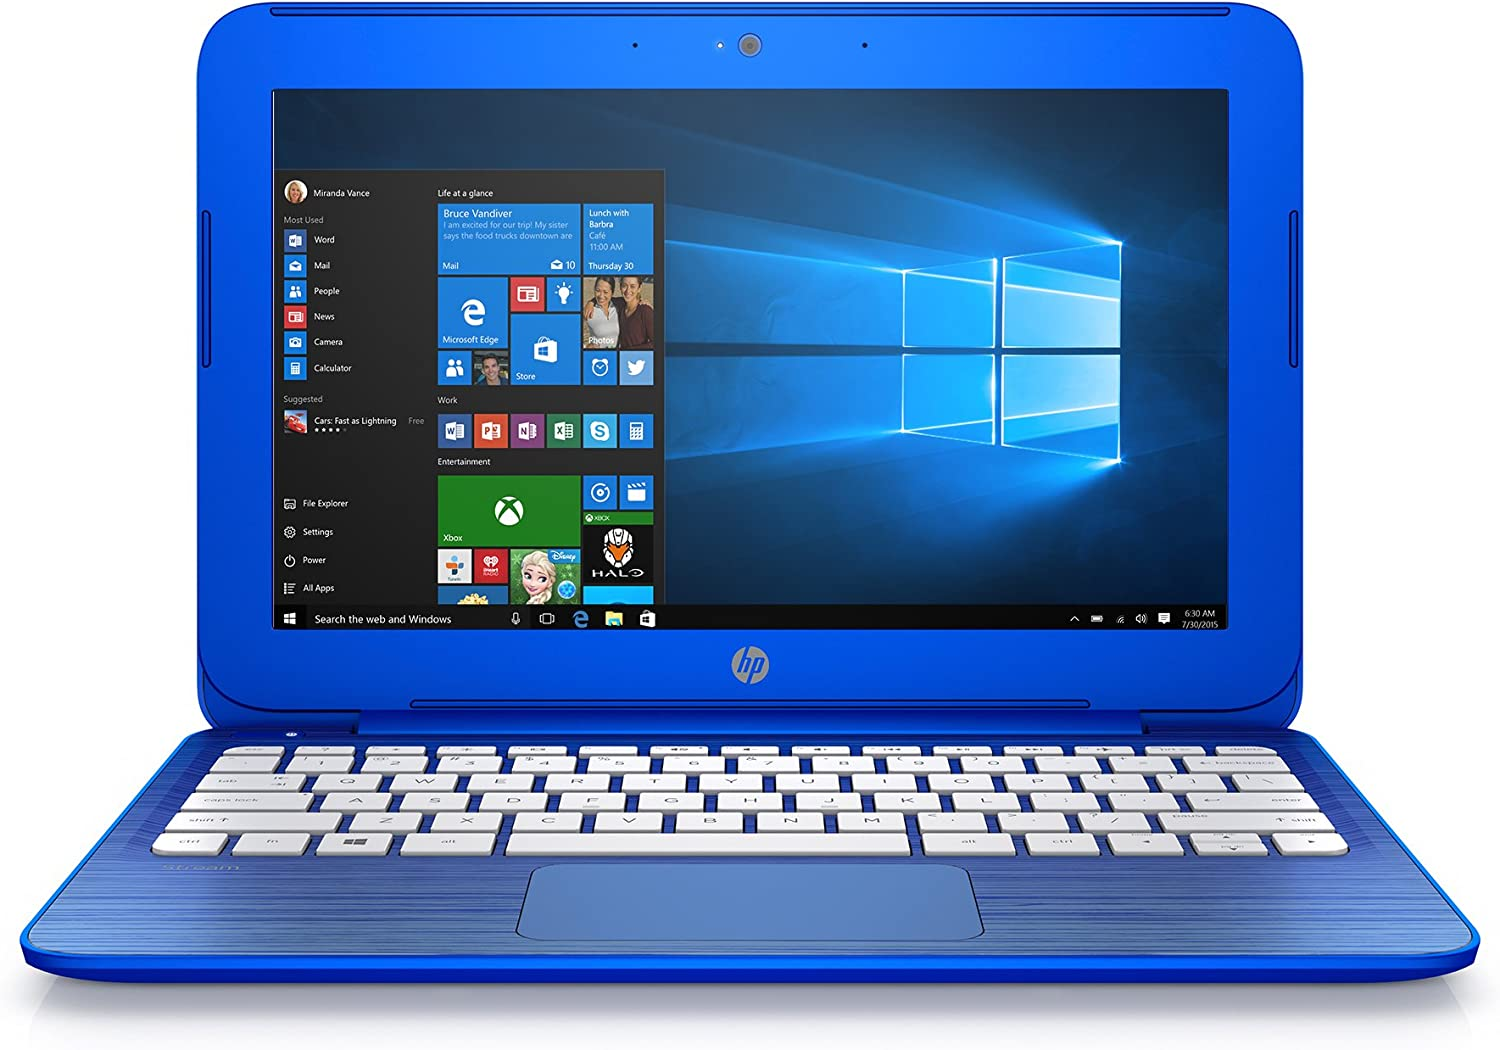 Amazon Com Discontinued Hp Stream 11 R010nr 11 6 Inch Notebook Intel Celeron Processor 2gb Ram 32 Gb Hard Drive Windows 10 Home 64 Bit Cobalt Blue Computers Accessories